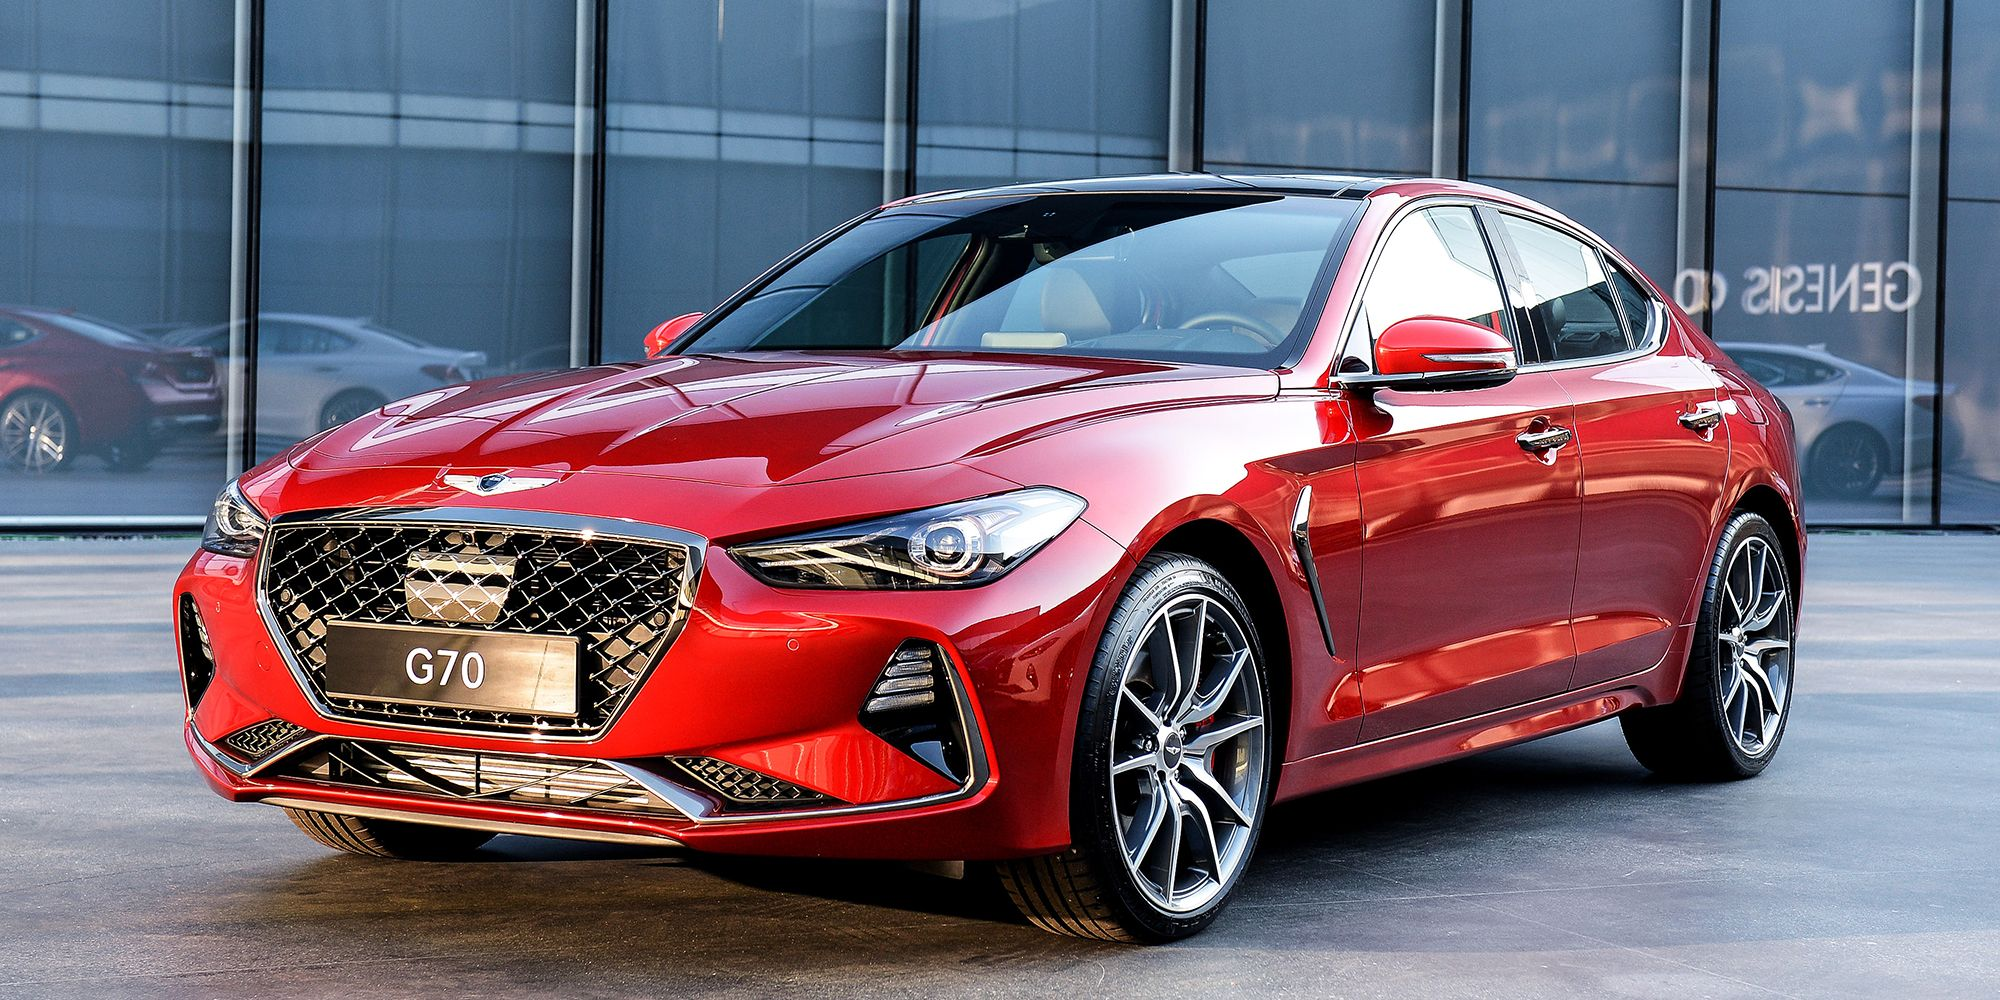 Hyundai Genesis G70 2018 Details On The New 2018 Genesis G70